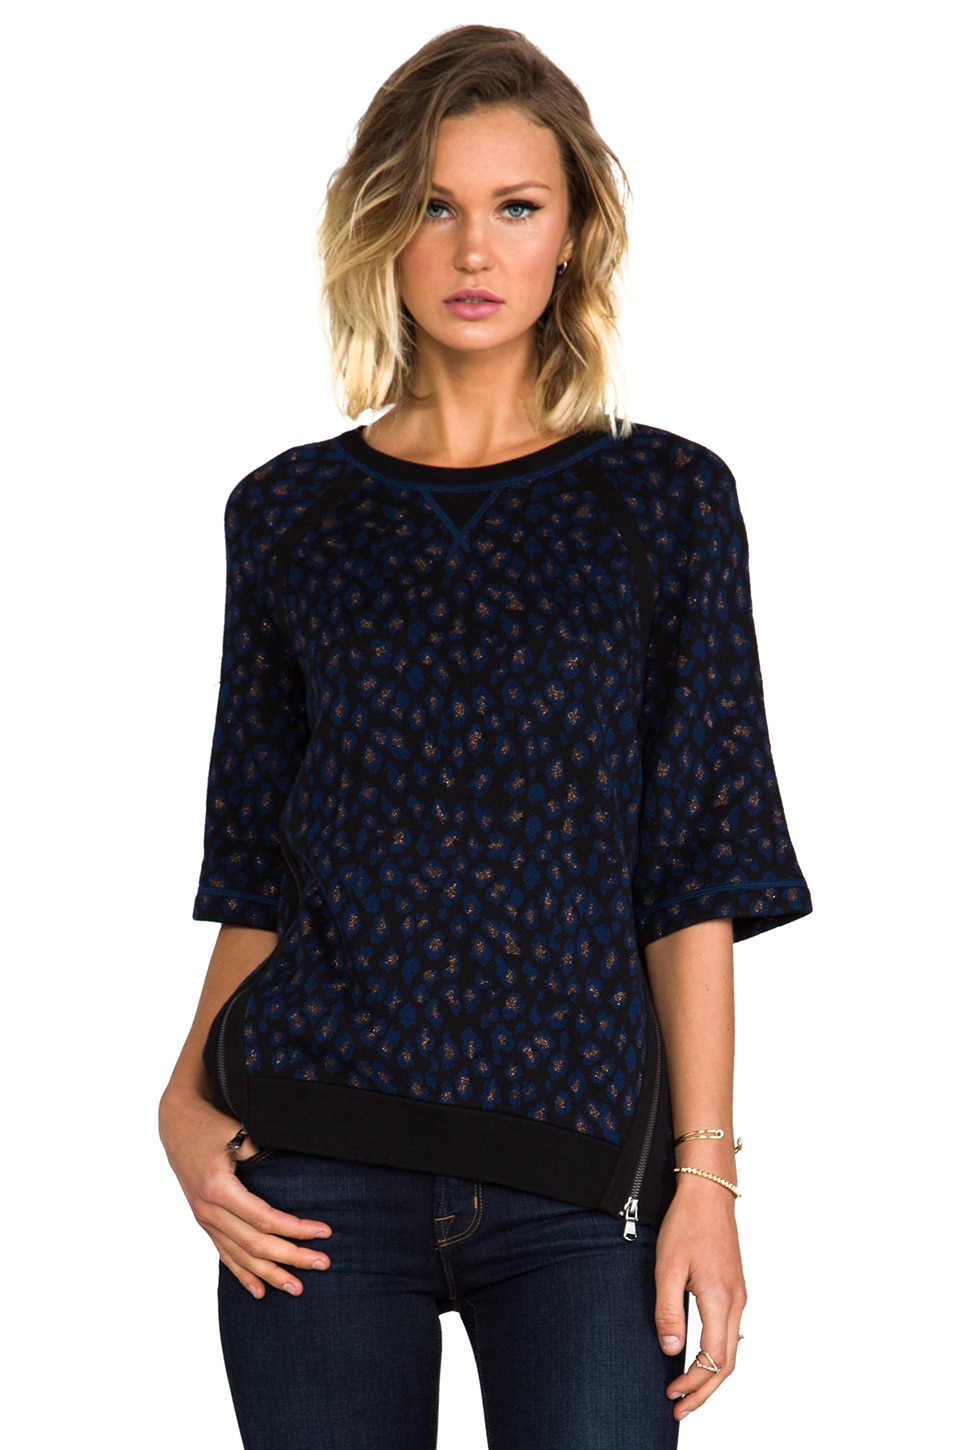 Marc by Marc Jacobs Sasha Sweater in Black Multi